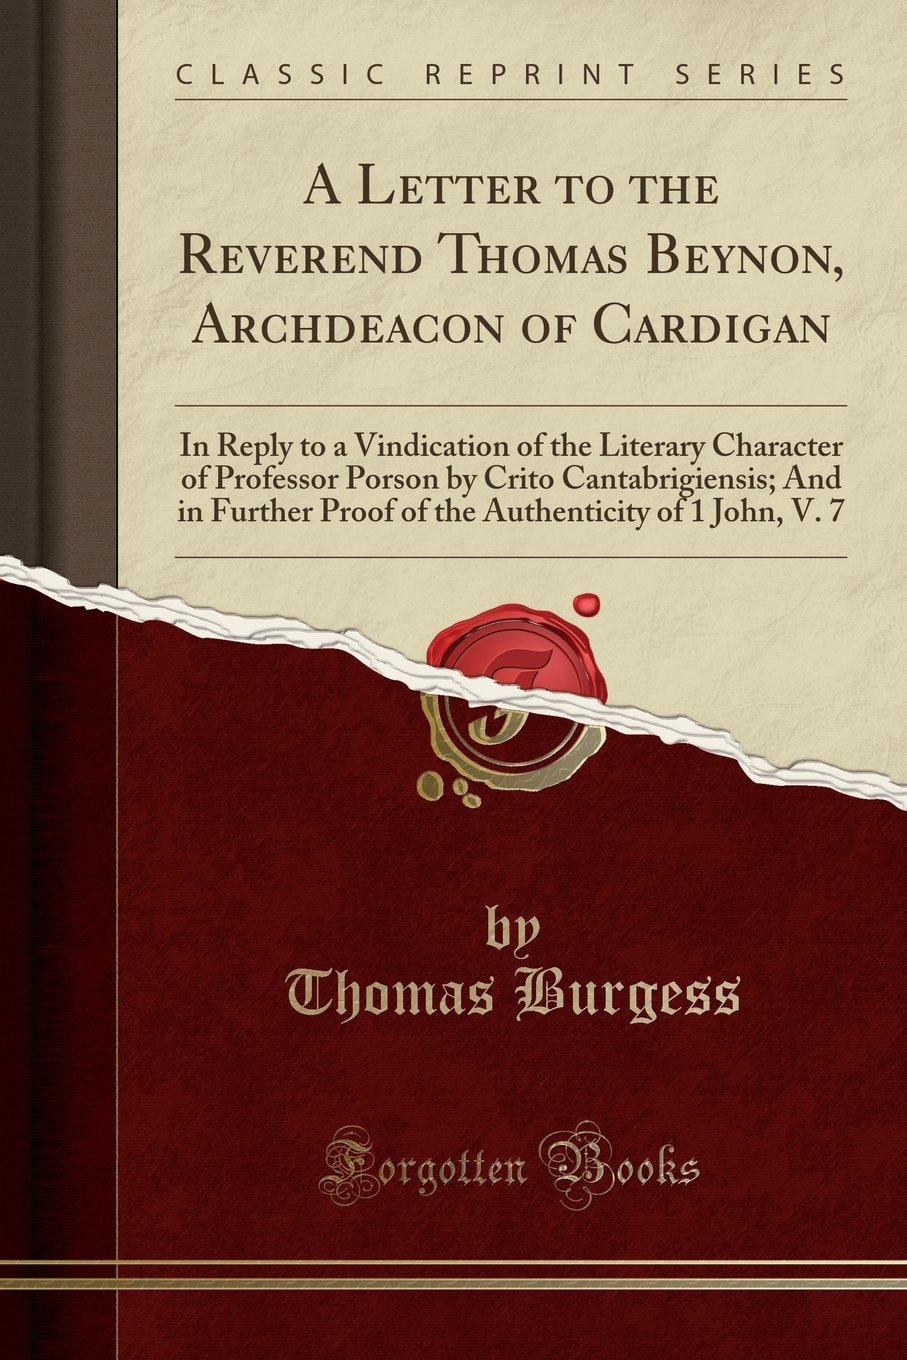 Download A Letter to the Reverend Thomas Beynon, Archdeacon of Cardigan: In Reply to a Vindication of the Literary Character of Professor Porson by Crito ... of 1 John, V. 7 (Classic Reprint) pdf epub